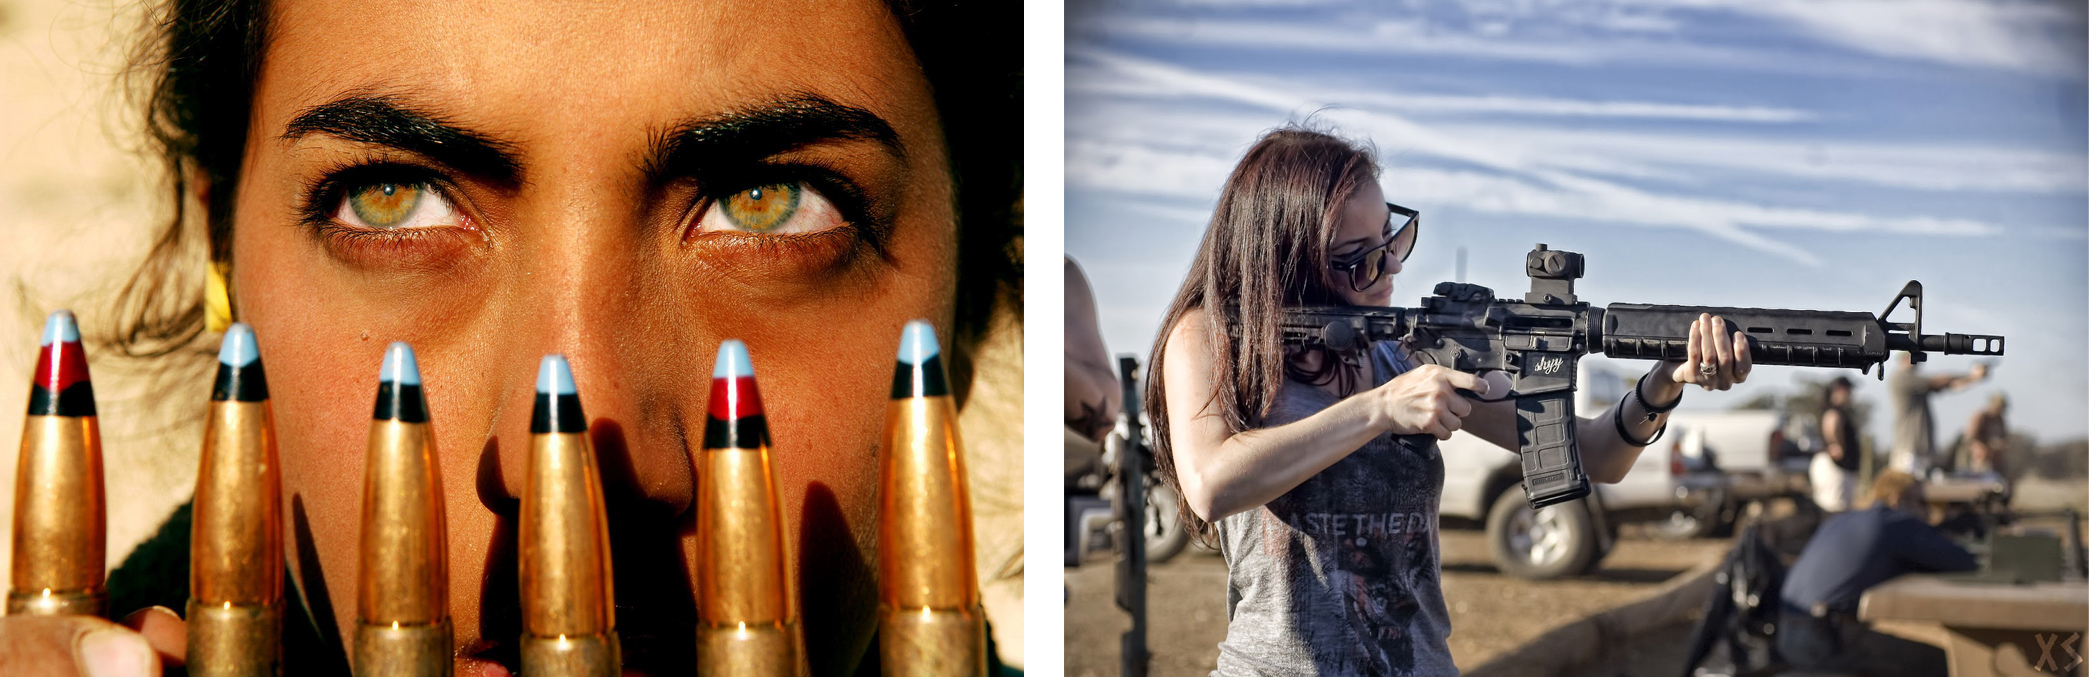 women_guns_bullets